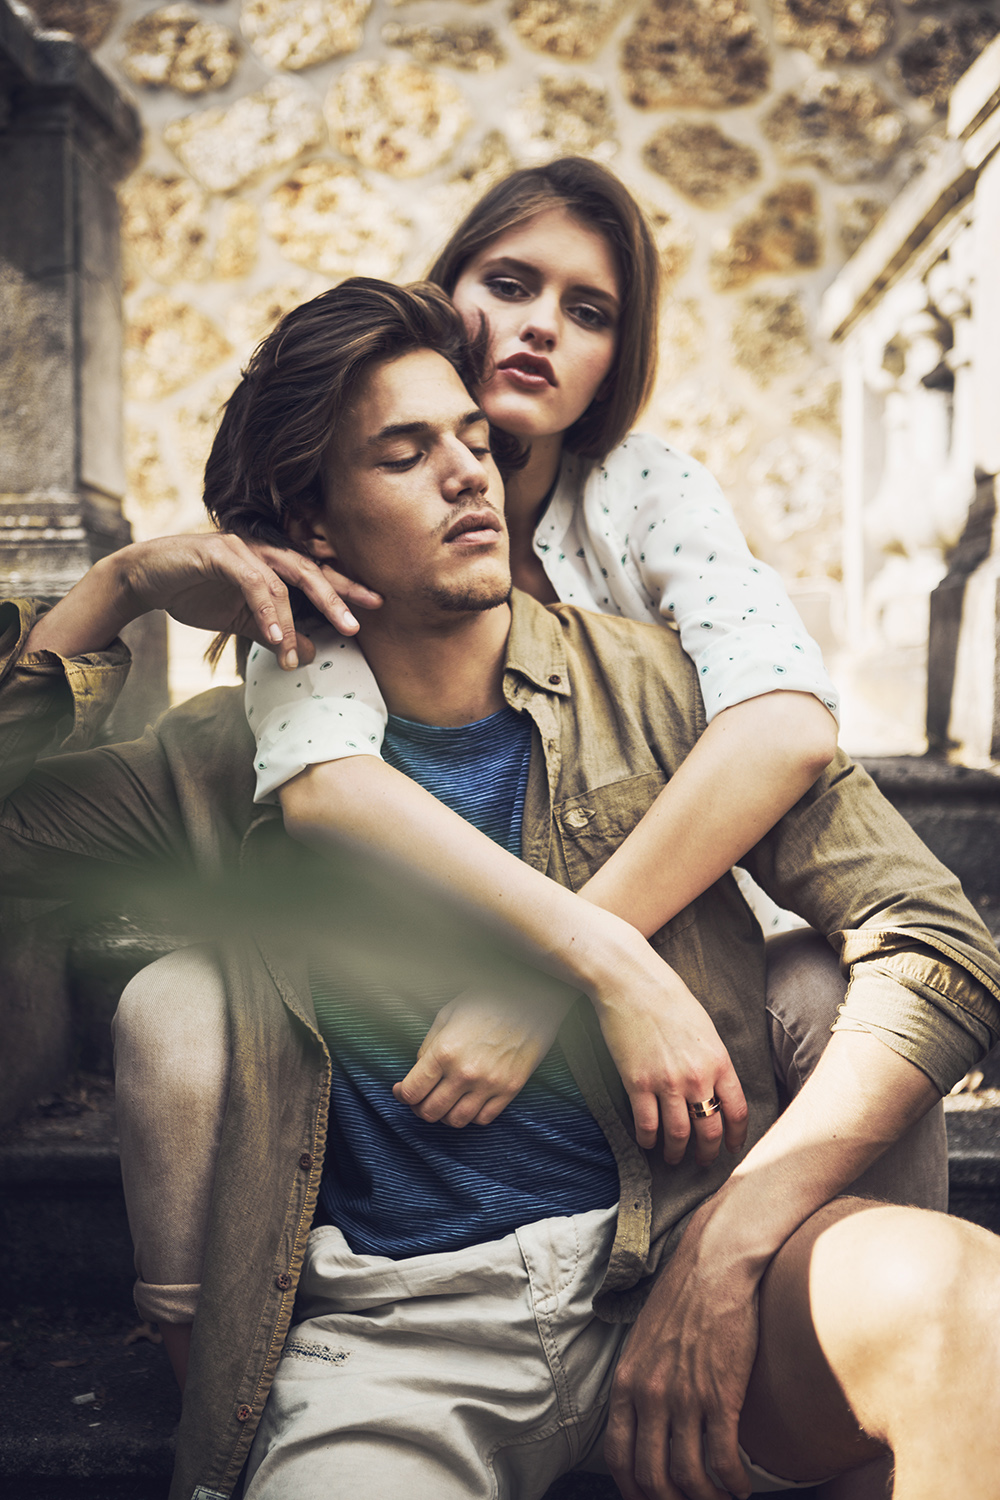 Lee Cooper Spring Summer – Photographer Williams B